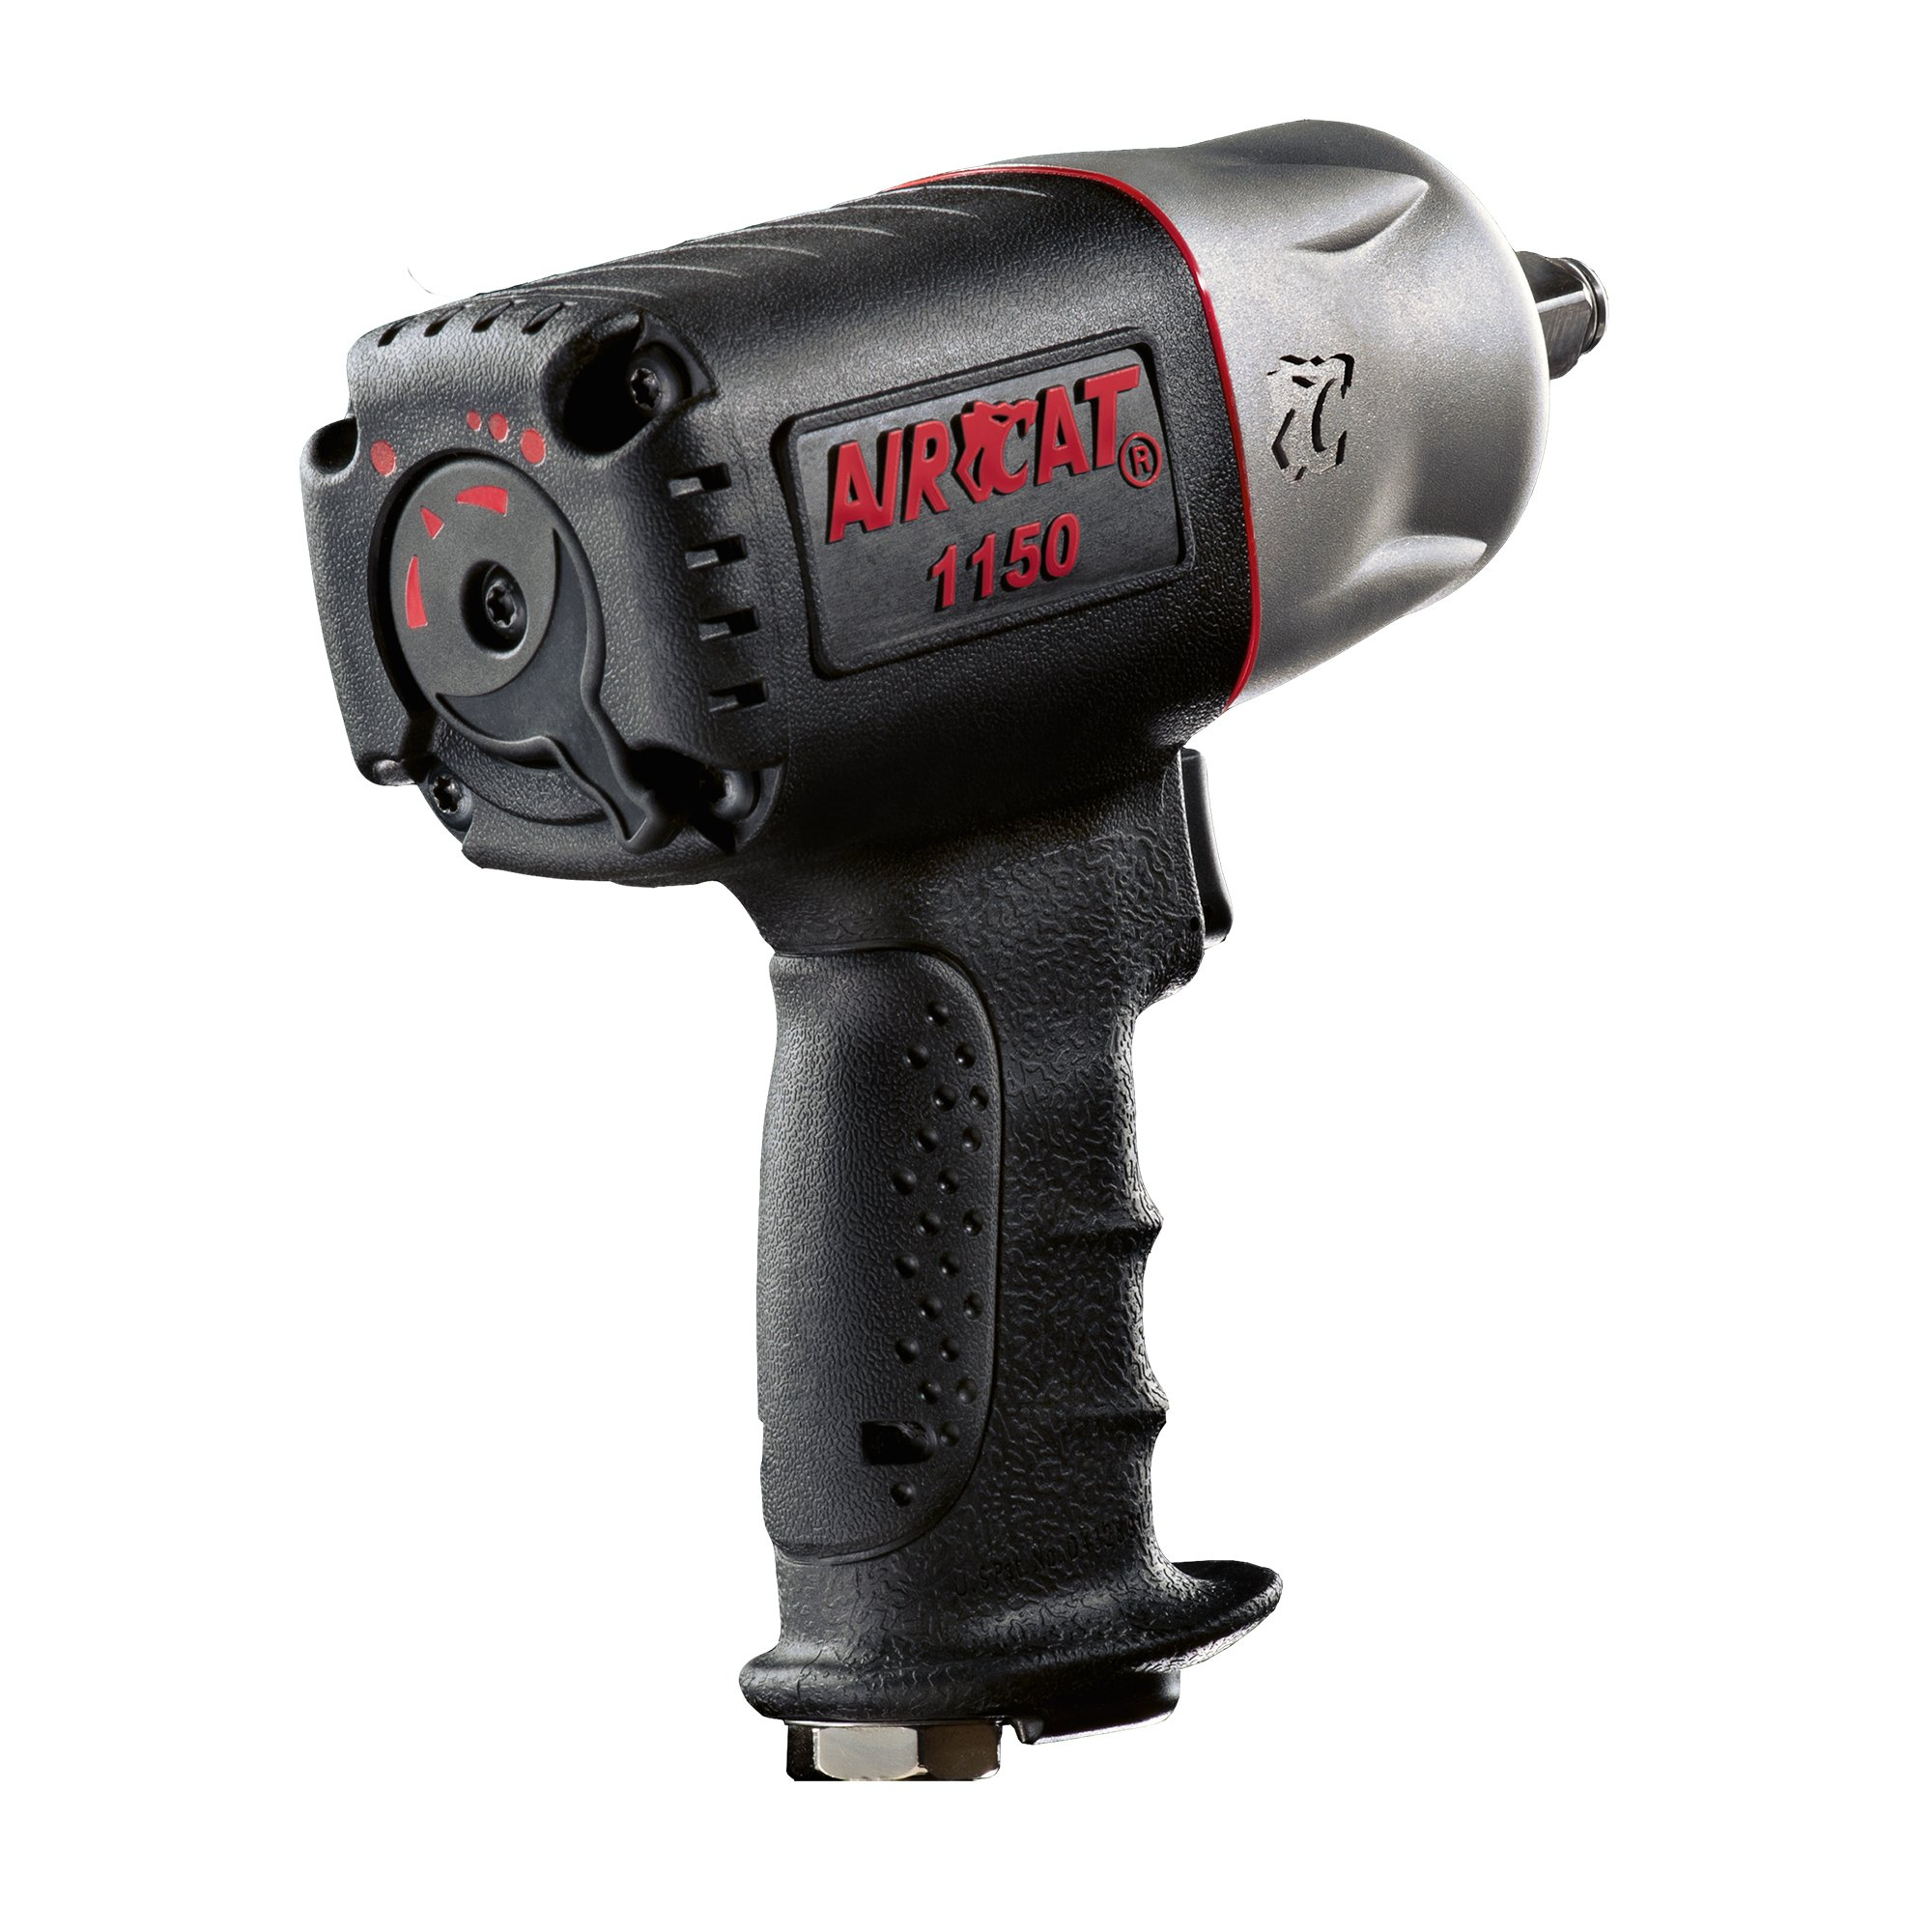 AIRCAT 1150 Killer Torque 1/2-Inch Impact Wrench, Black